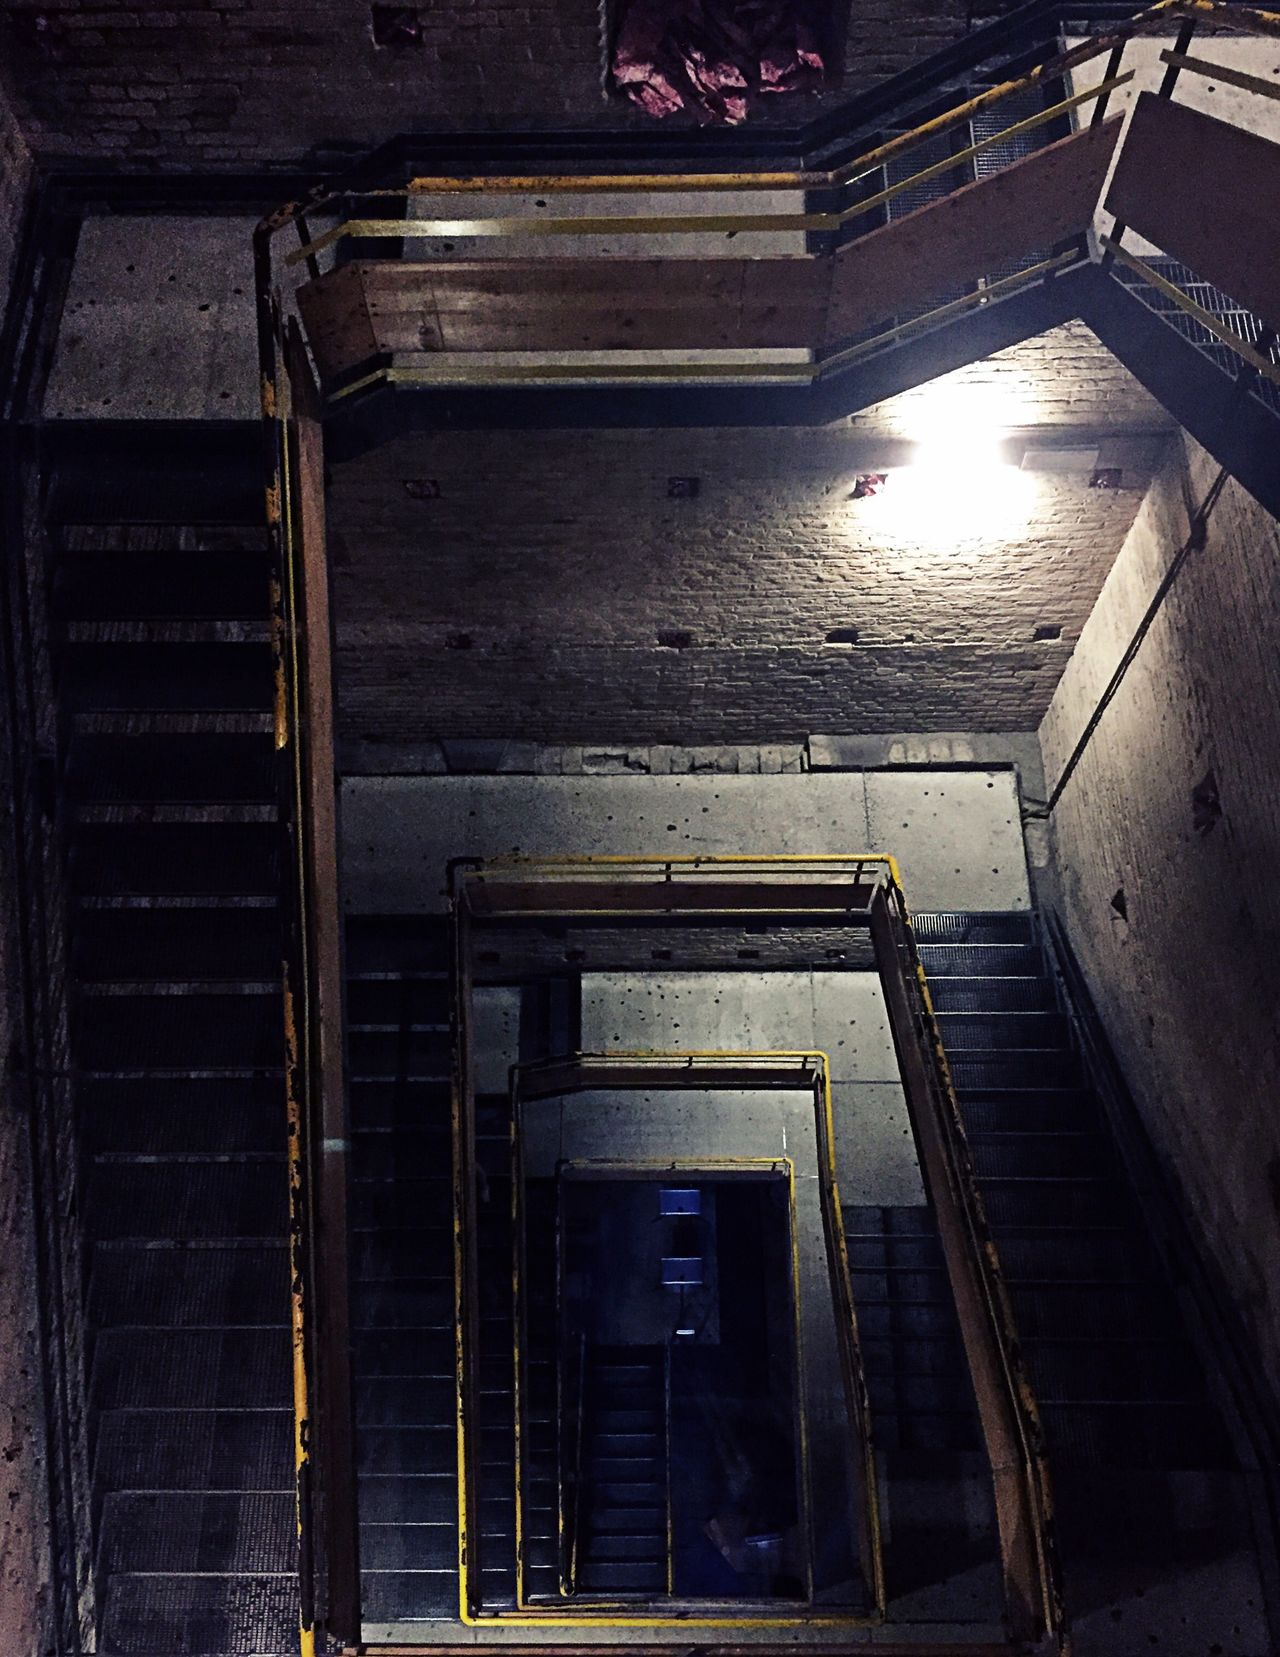 Architecture Built Structure No People Indoors  Illuminated Low Angle View Staircase Day Architecture Stairs Stair